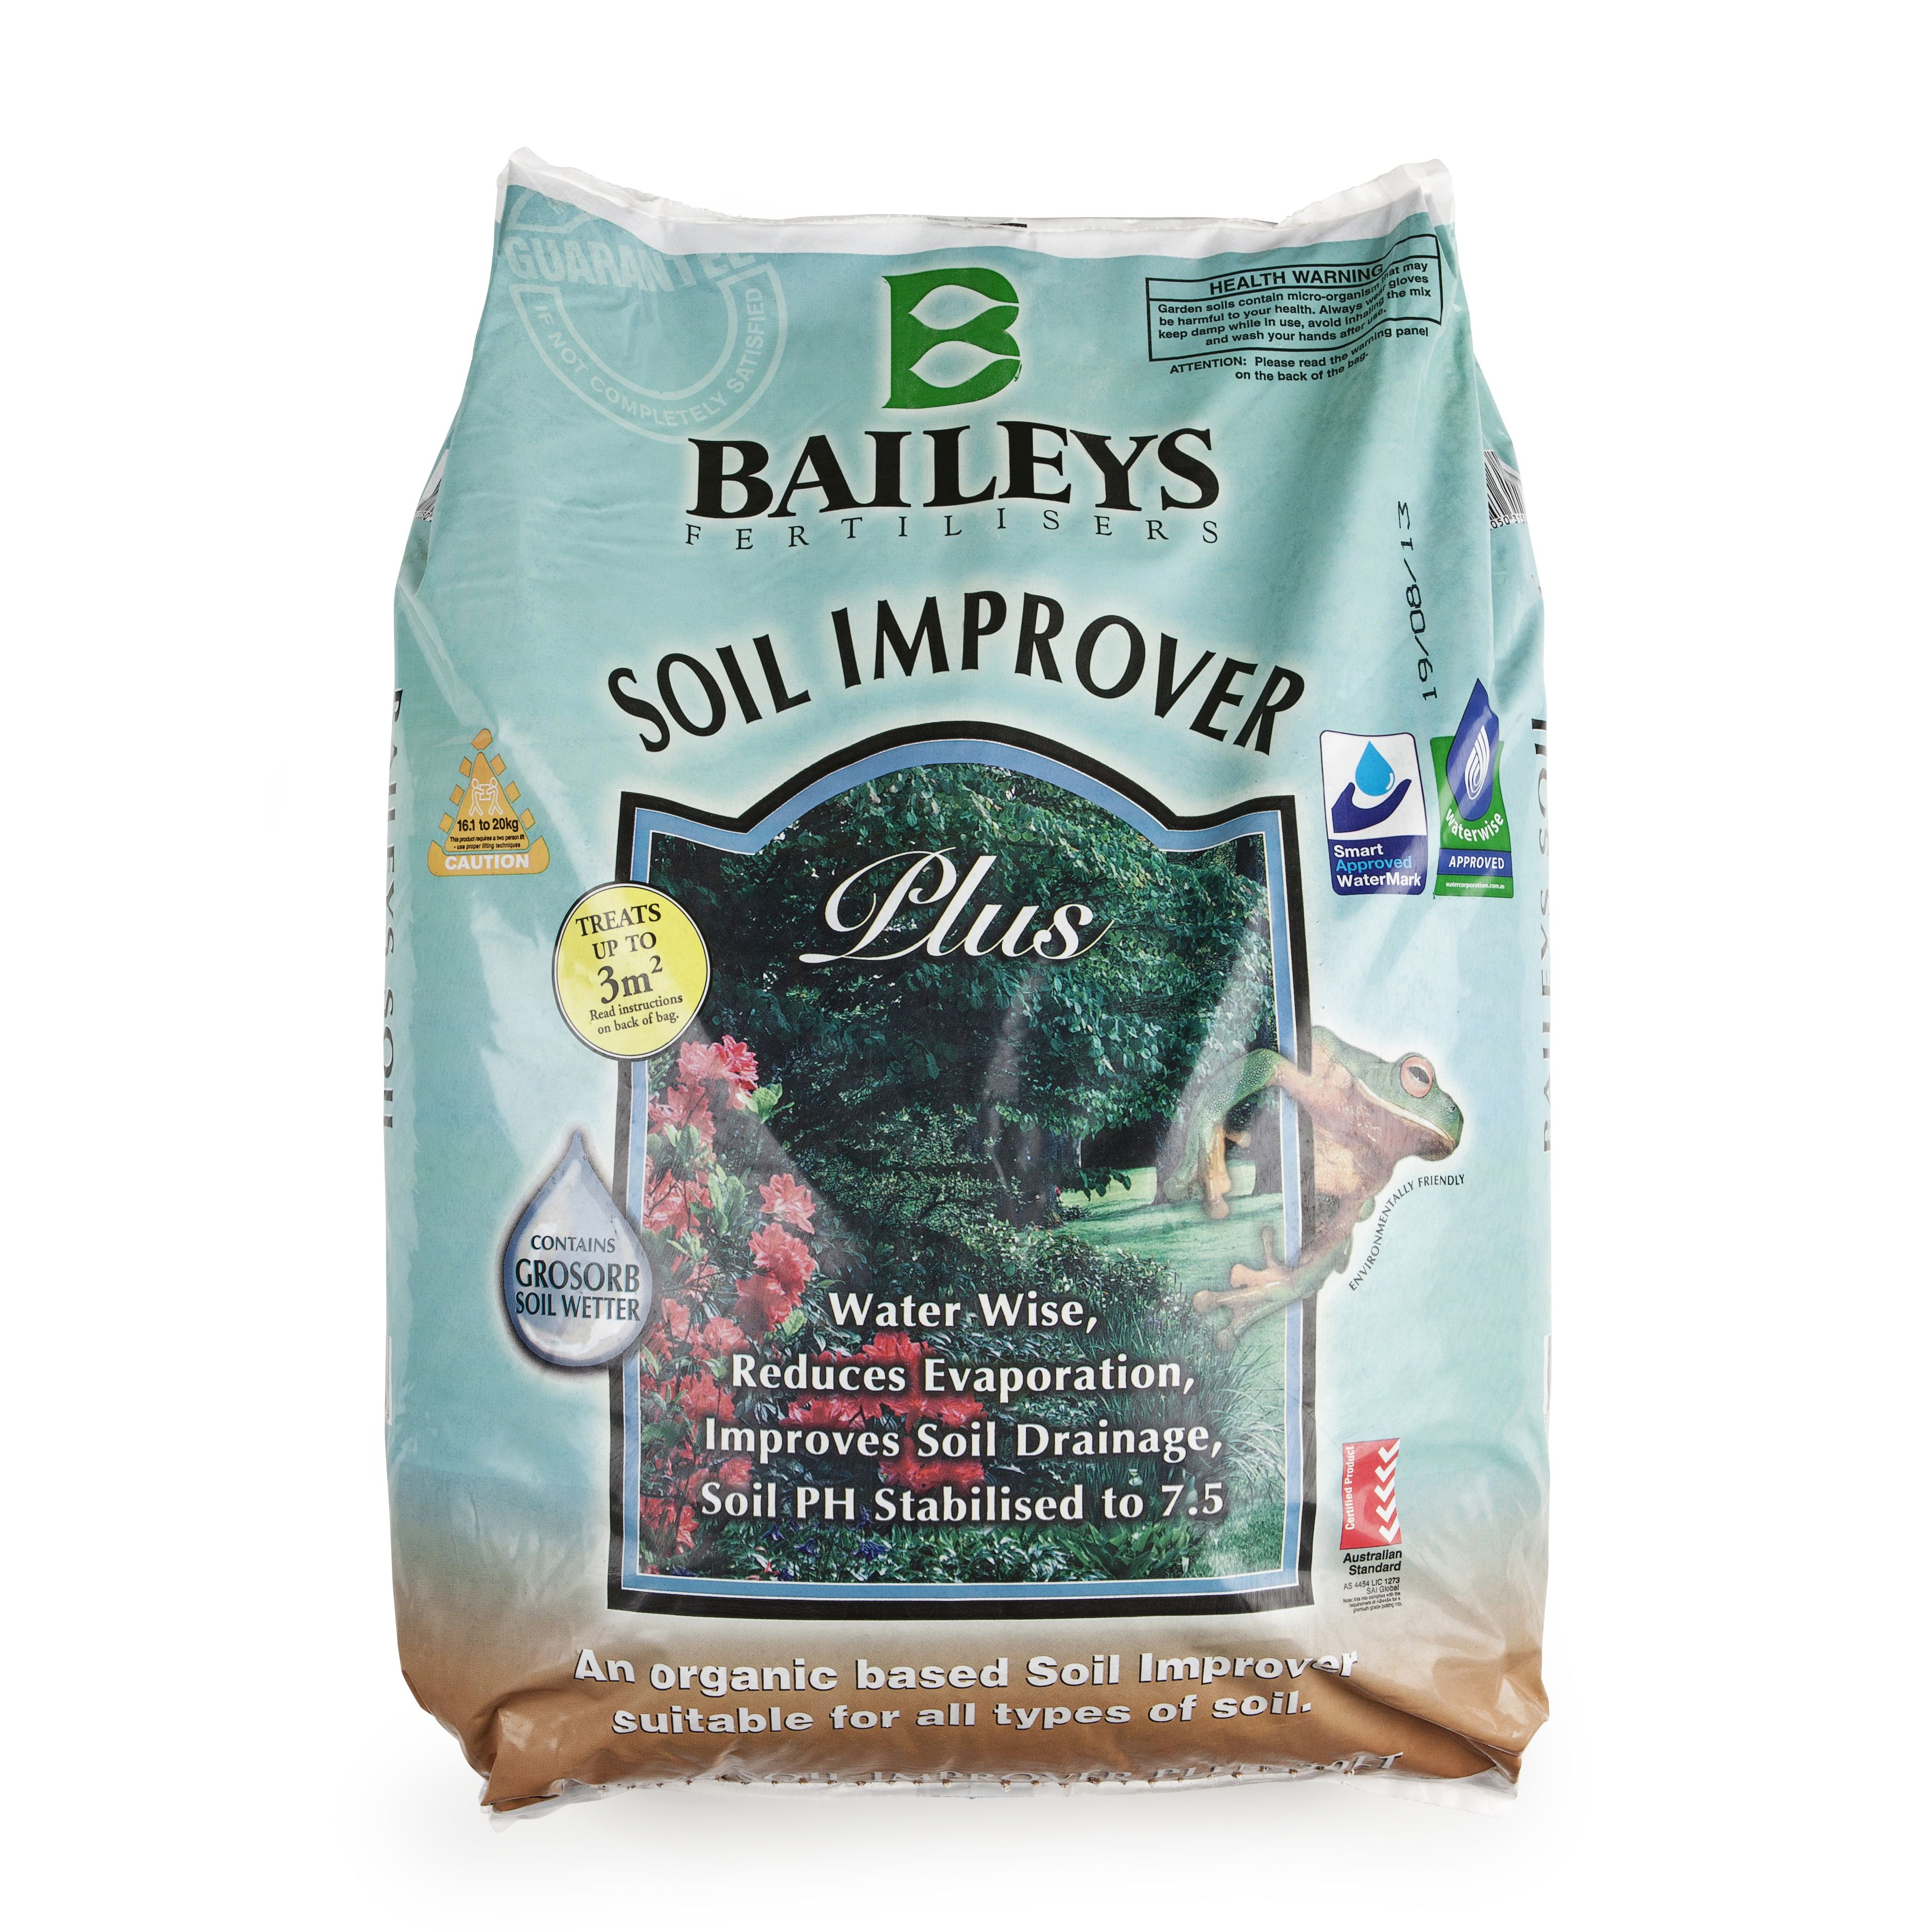 A Natural Organic Compost Suitable For All Garden Situations Baileys Soil Improver Provides A Basic Nutrient Source And Re Soil Improvement Water Wise Wetter